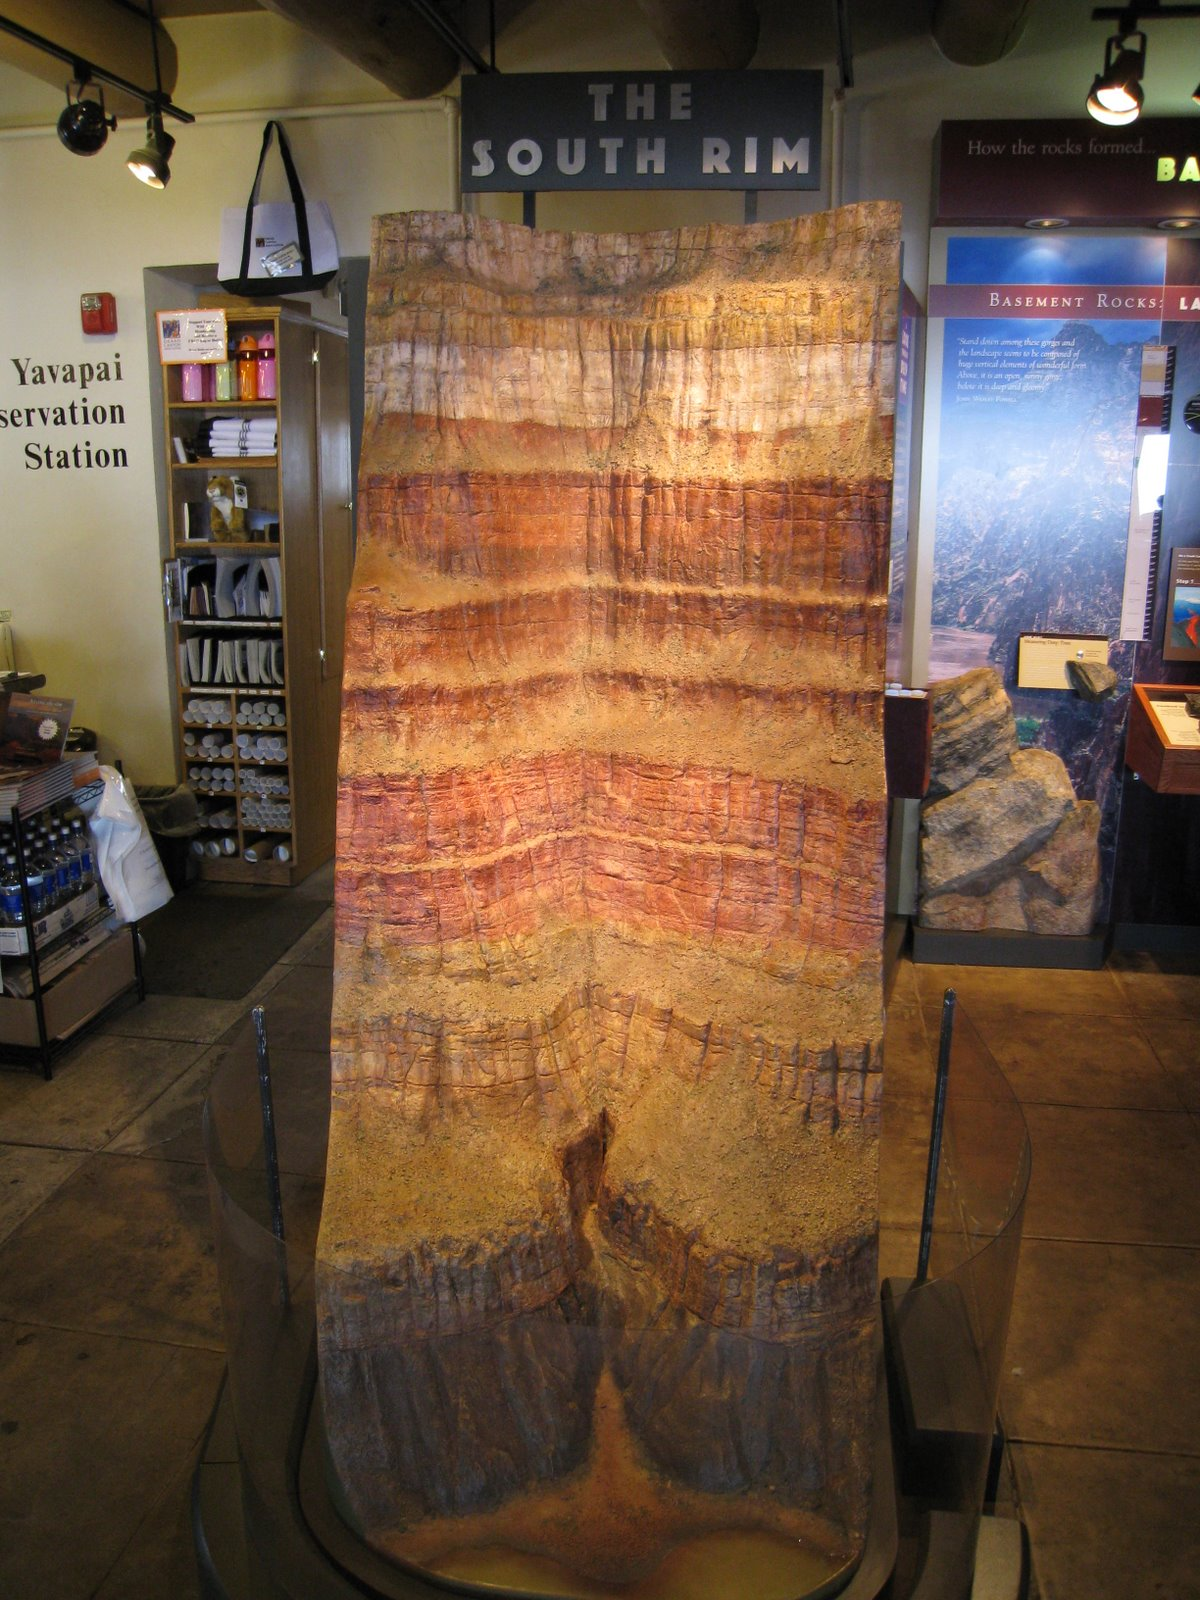 A model of the South Rim inside the Yavapai Observation Station